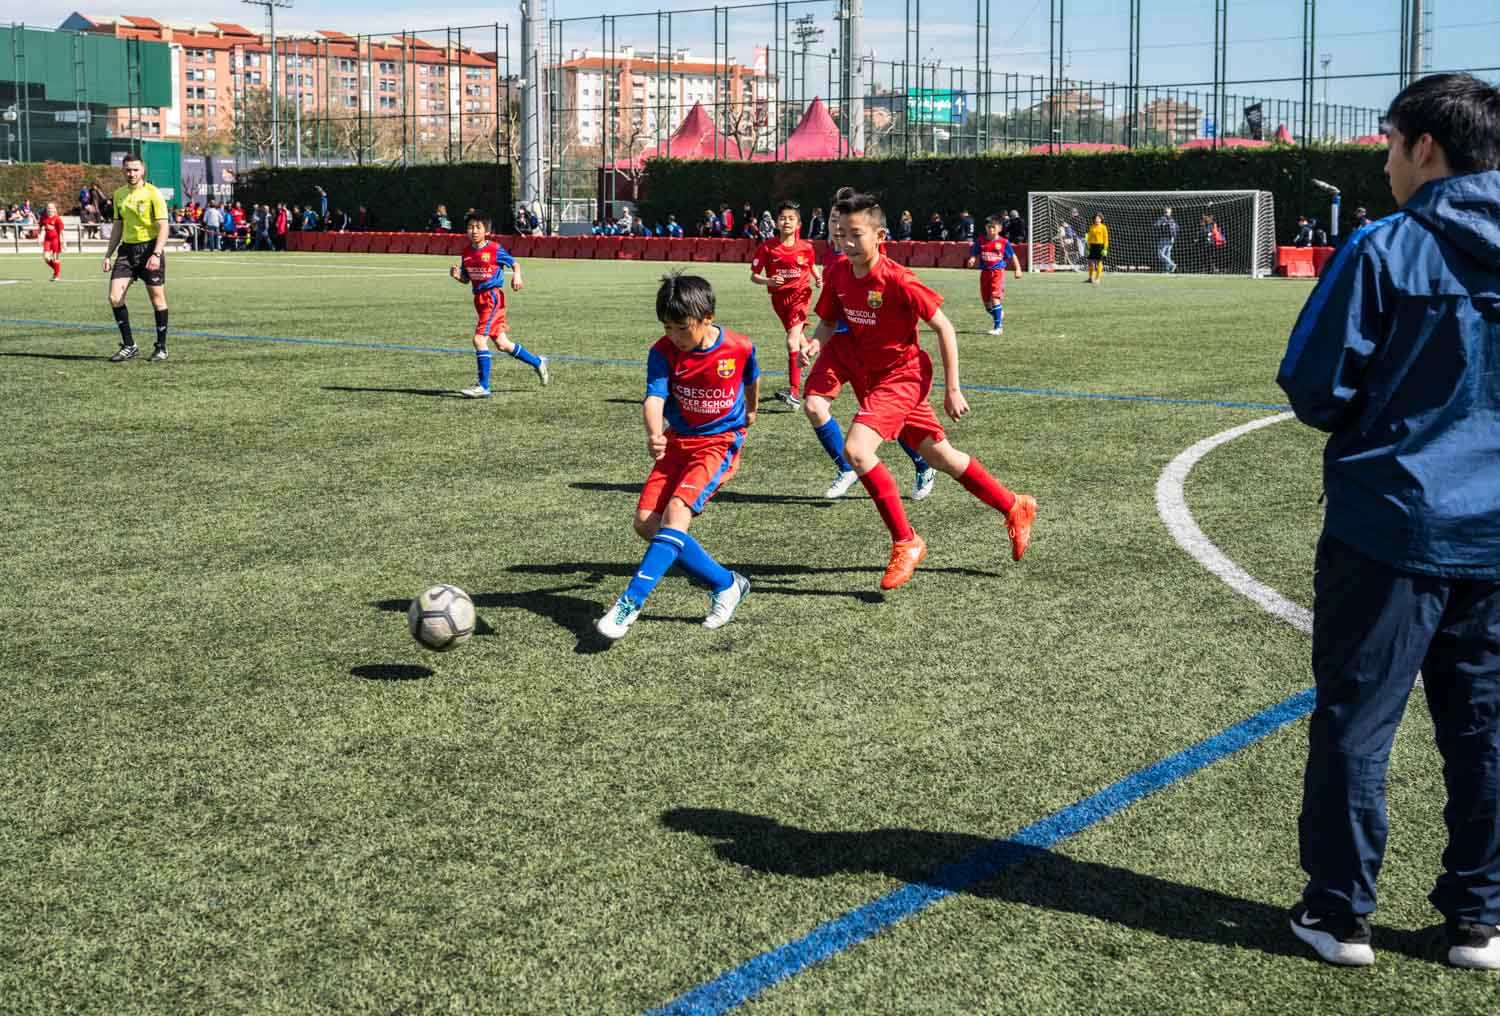 Young Athletes show winning spirit at FCBEscola International Tournament Presented by Rakuten